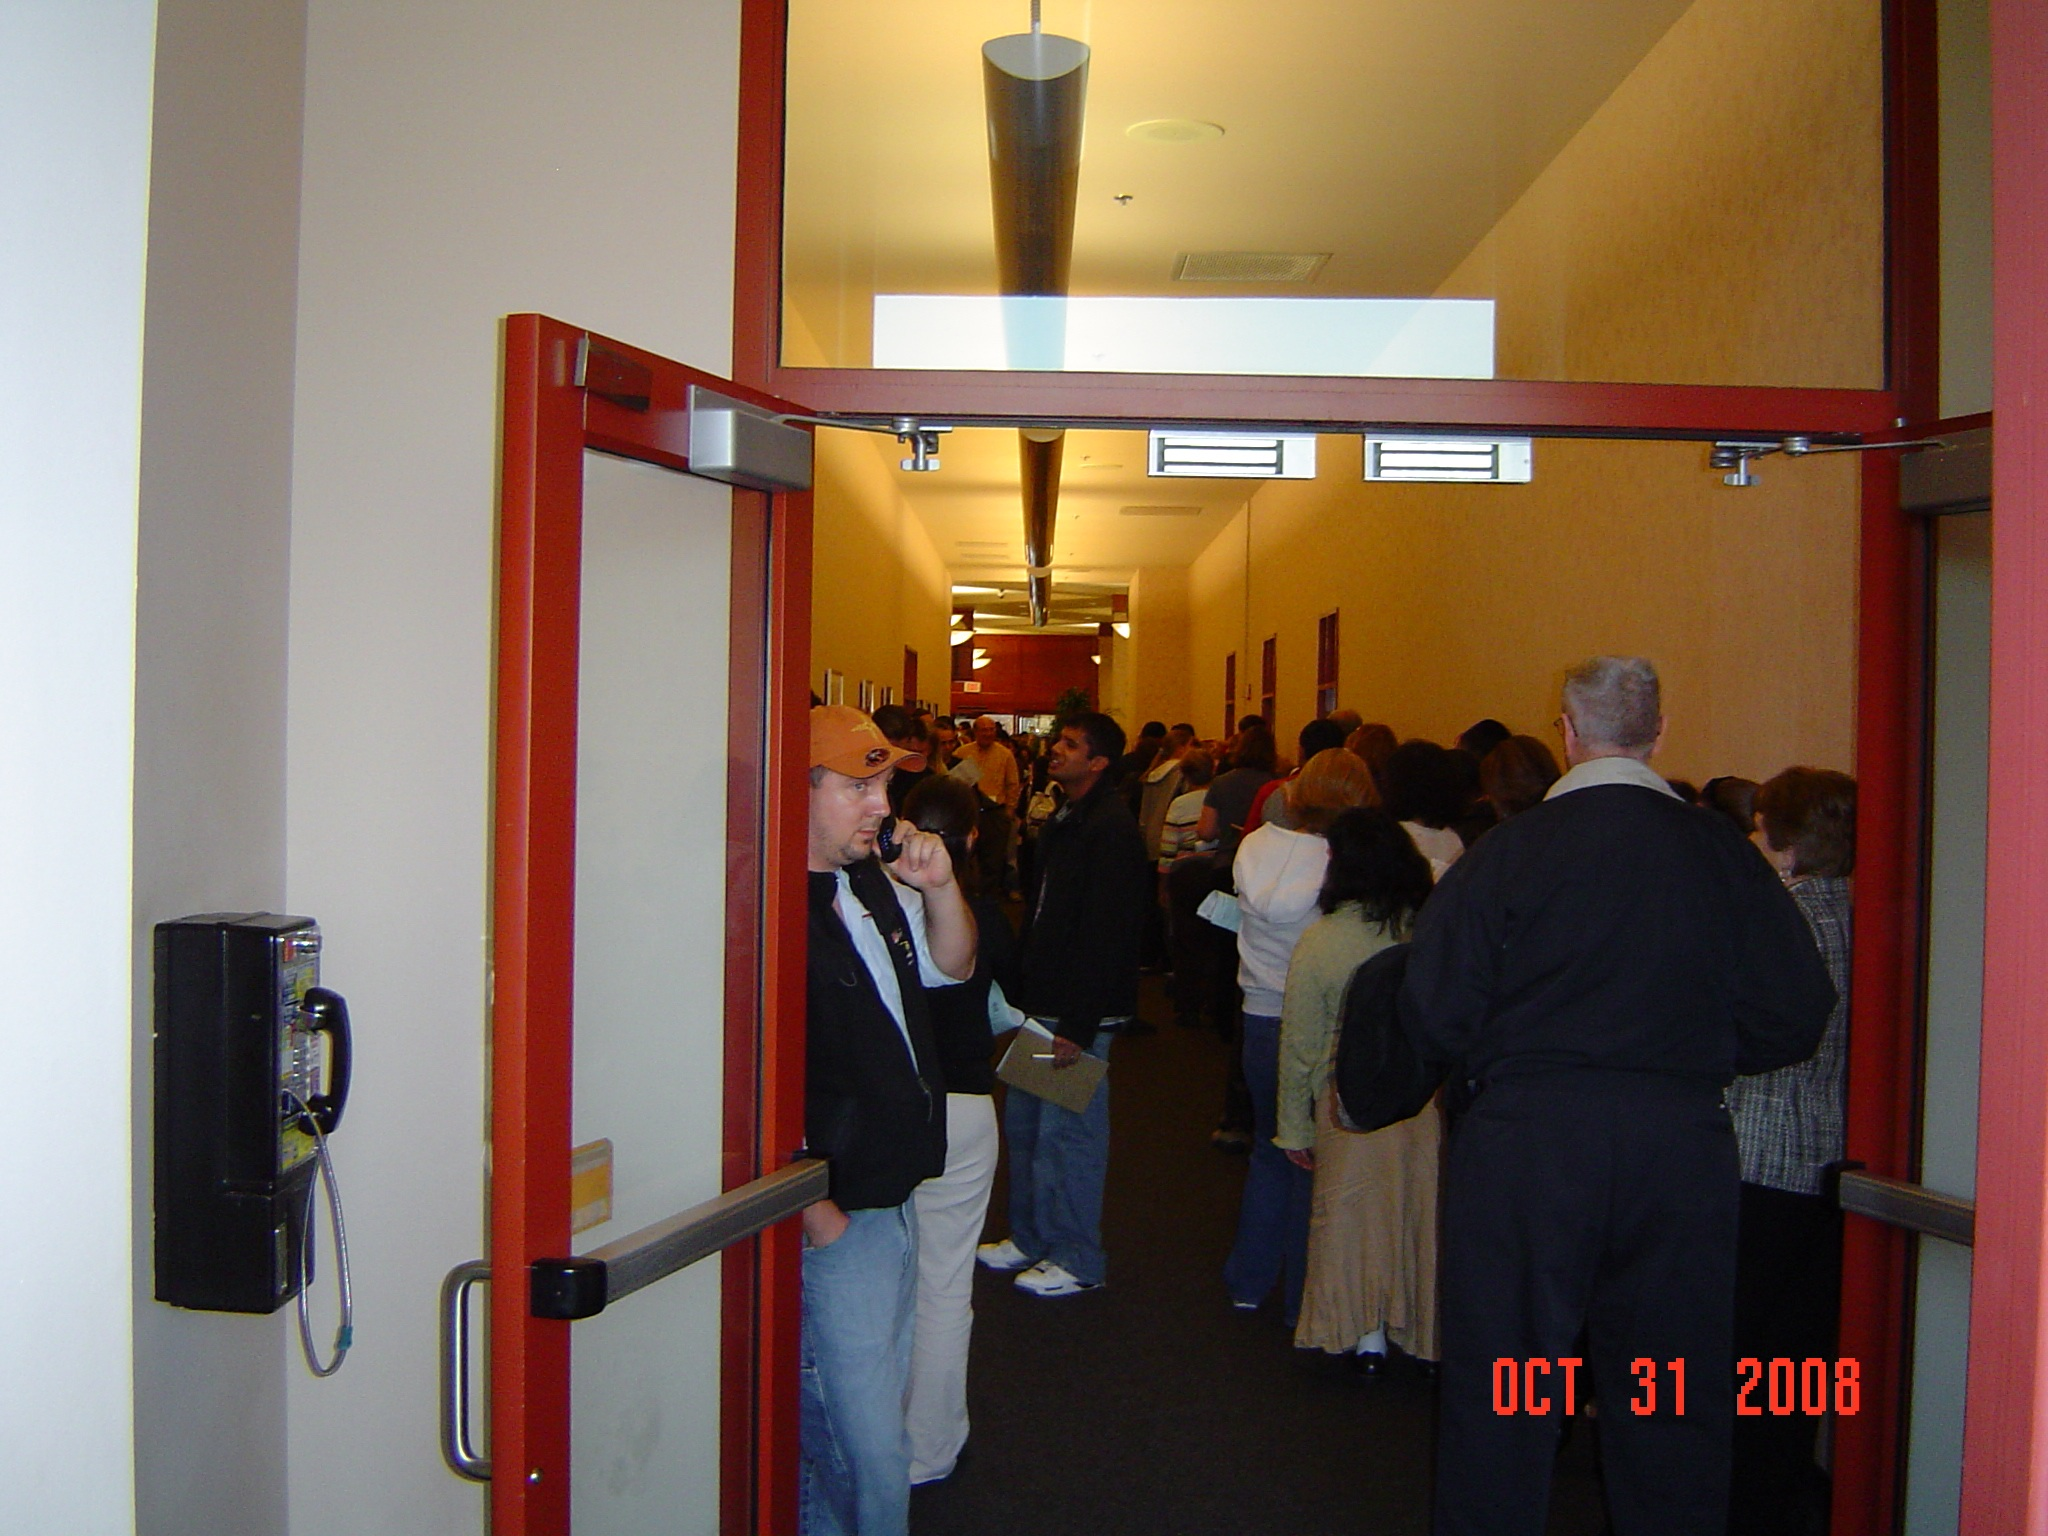 Schaumburg Township District Library's line of Cook County early voters after poll hours elapsed on Thursday, the final day for early voting in Illinois. Some people waited up to two hours after polls closed at this location to cast their ballots.